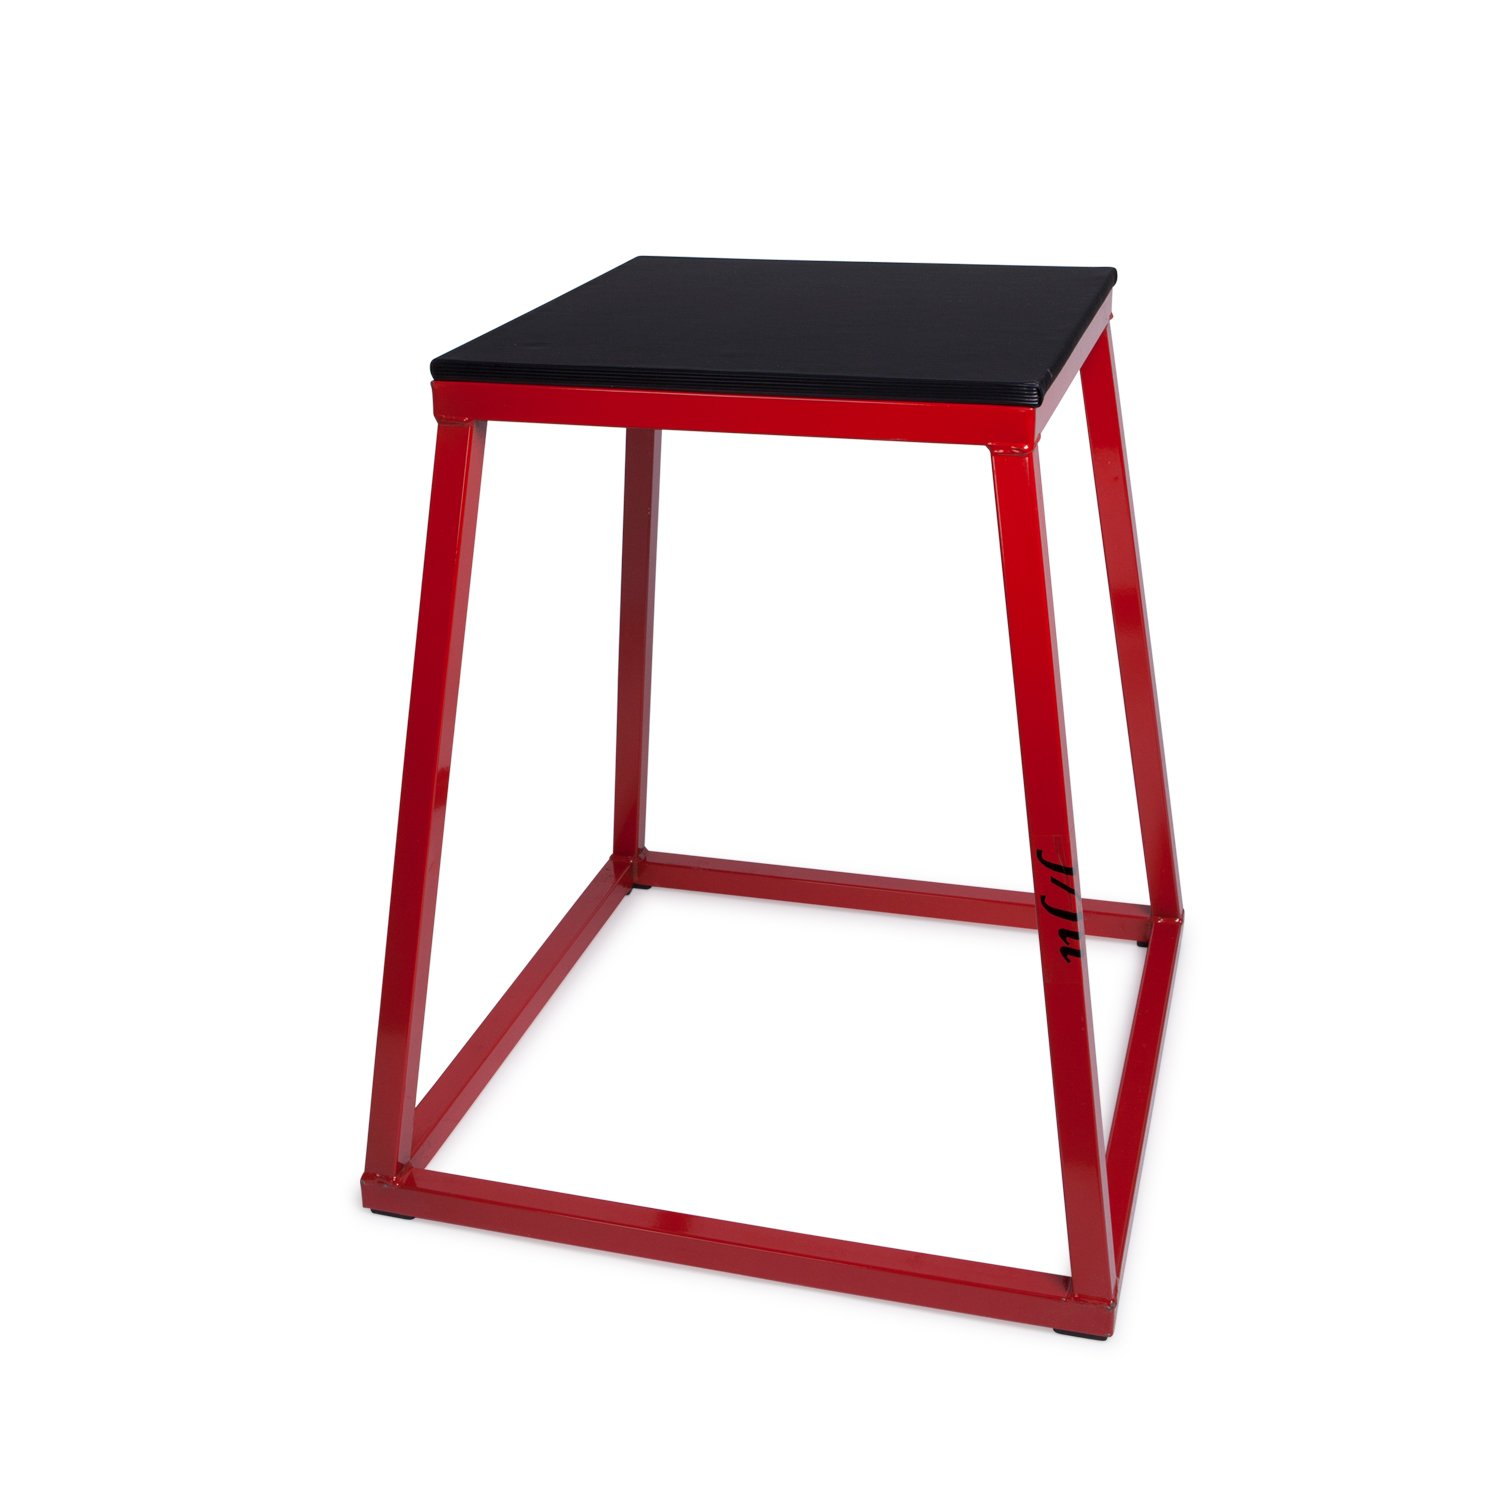 j/fit Plyometric Jump Box - 18'' Height by j/fit